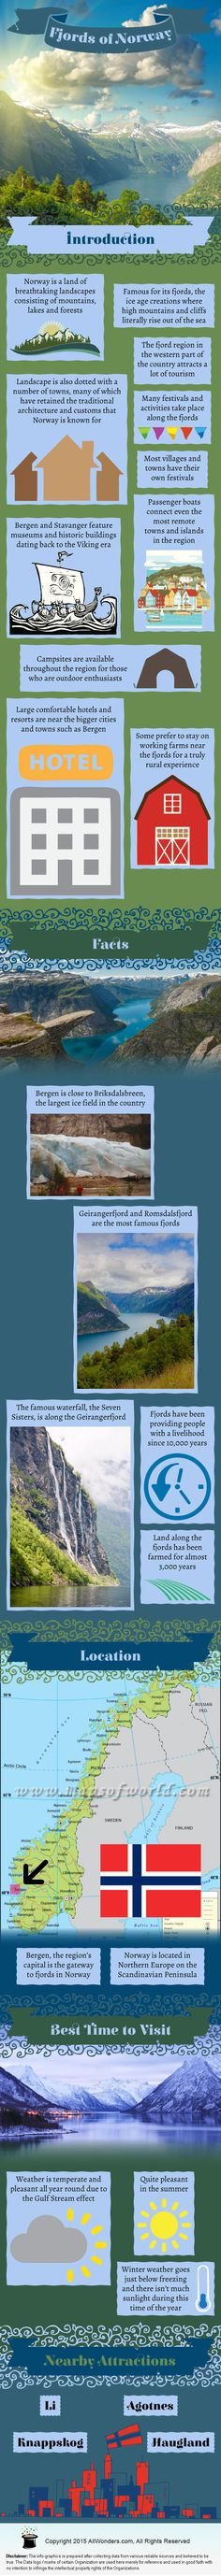 Fjords of Norway Infographic - Find Facts and Information about the Fjords of Norway. Also find out about its location, best time to visit, nearby attractions and more.